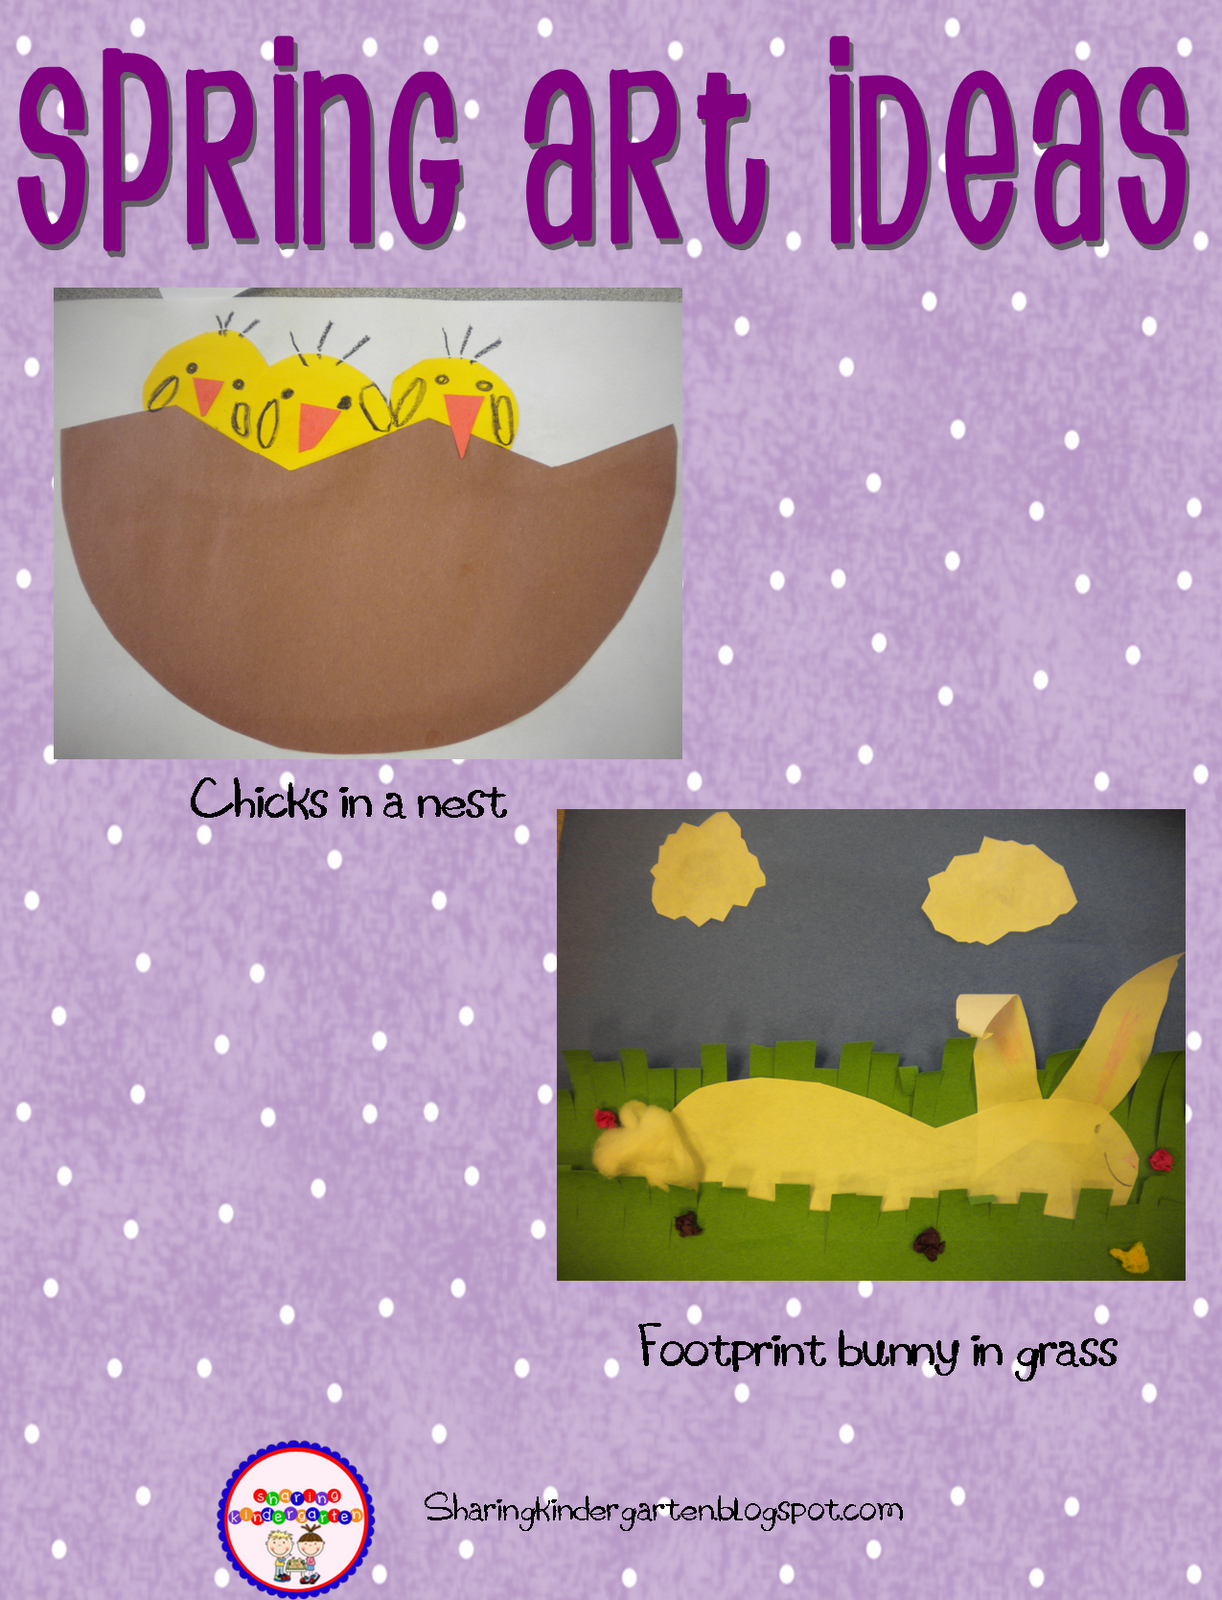 Spring Art Ideas | April art | Spring art projects, Spring